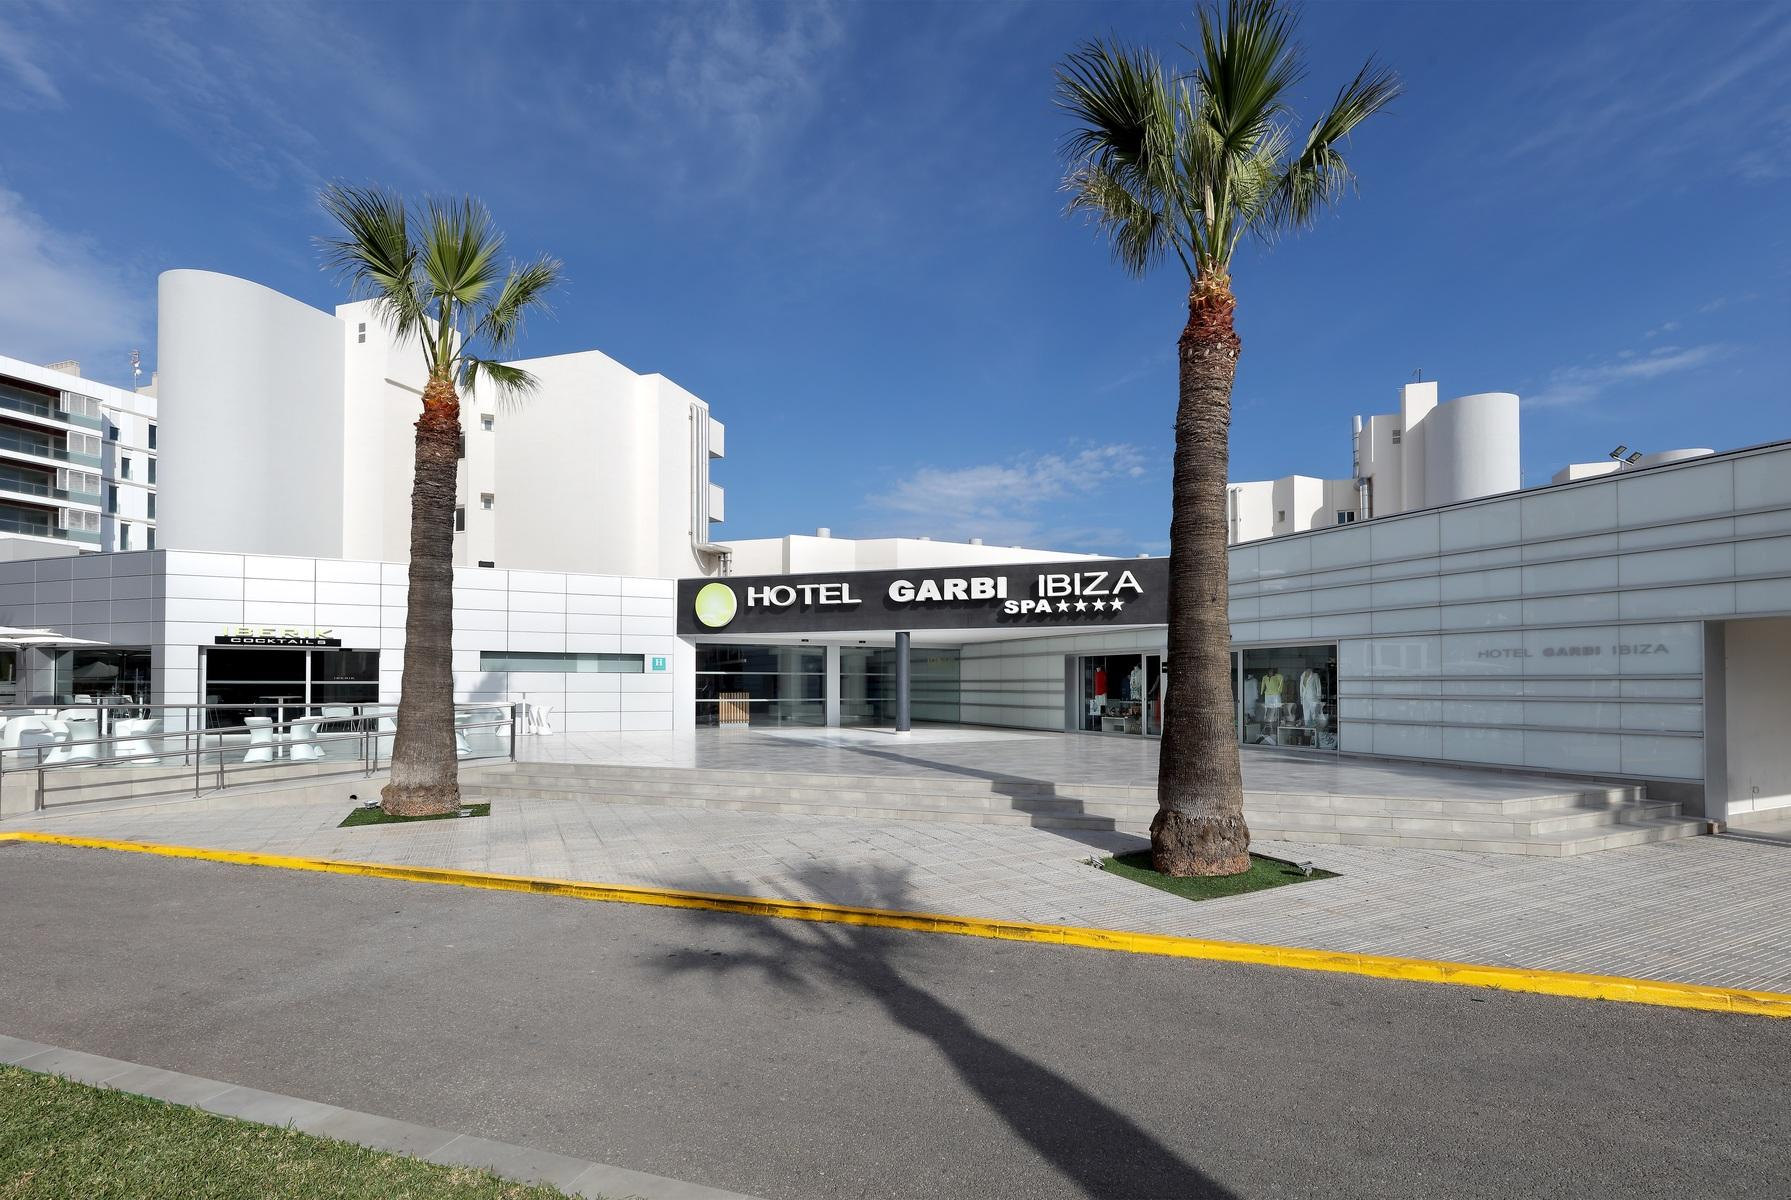 Hotel Garbi Ibiza & Spa in Playa d'en Bossa, Ibiza, Balearic Islands